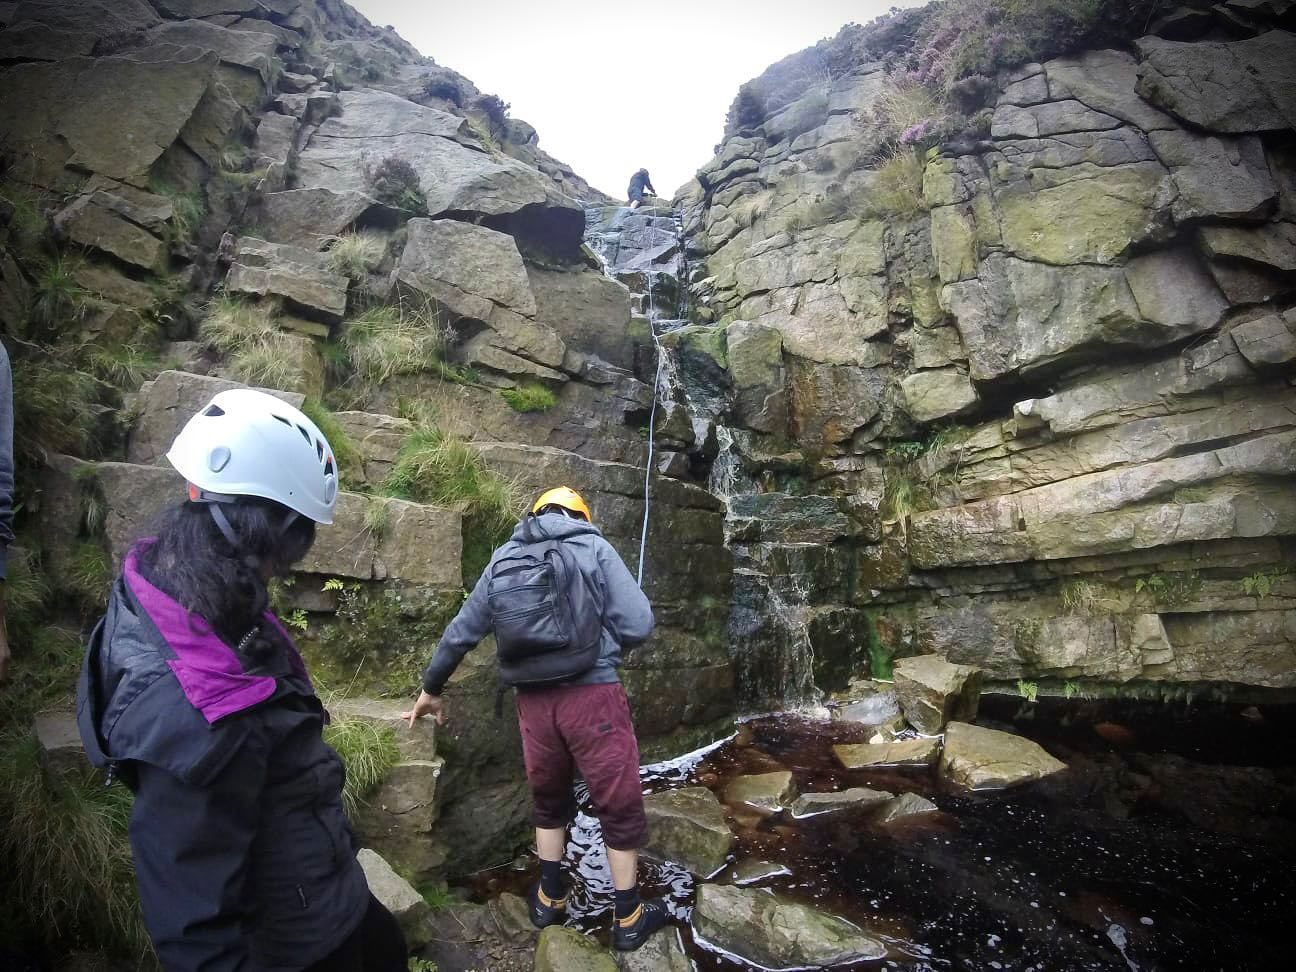 On our Mountain Adventure Scrambles we'll stay off the beaten track, making sure to find the most exciting way up the hill we can find, be that following streams or climbing rocky outcrops, and stopping to explore all the caves, tunnels and interesting things we can find.   For booking and more information - https://www.wilderness-development.com/walks-and-scrambles/mountain-adventure-scramble ⛰🥾⛰  . . . #wildernessdevelopment #smallbusiness #scrambling #adventures #trysomethingnew #peakdistrict #kinderscout #peakdistrictnationalpark #peakdistrictclimbing #mountainsfellsandhikes #roamtheuk #outdoorpursuits #outdooradventures #outdooractivities #nationalparksuk #booknow